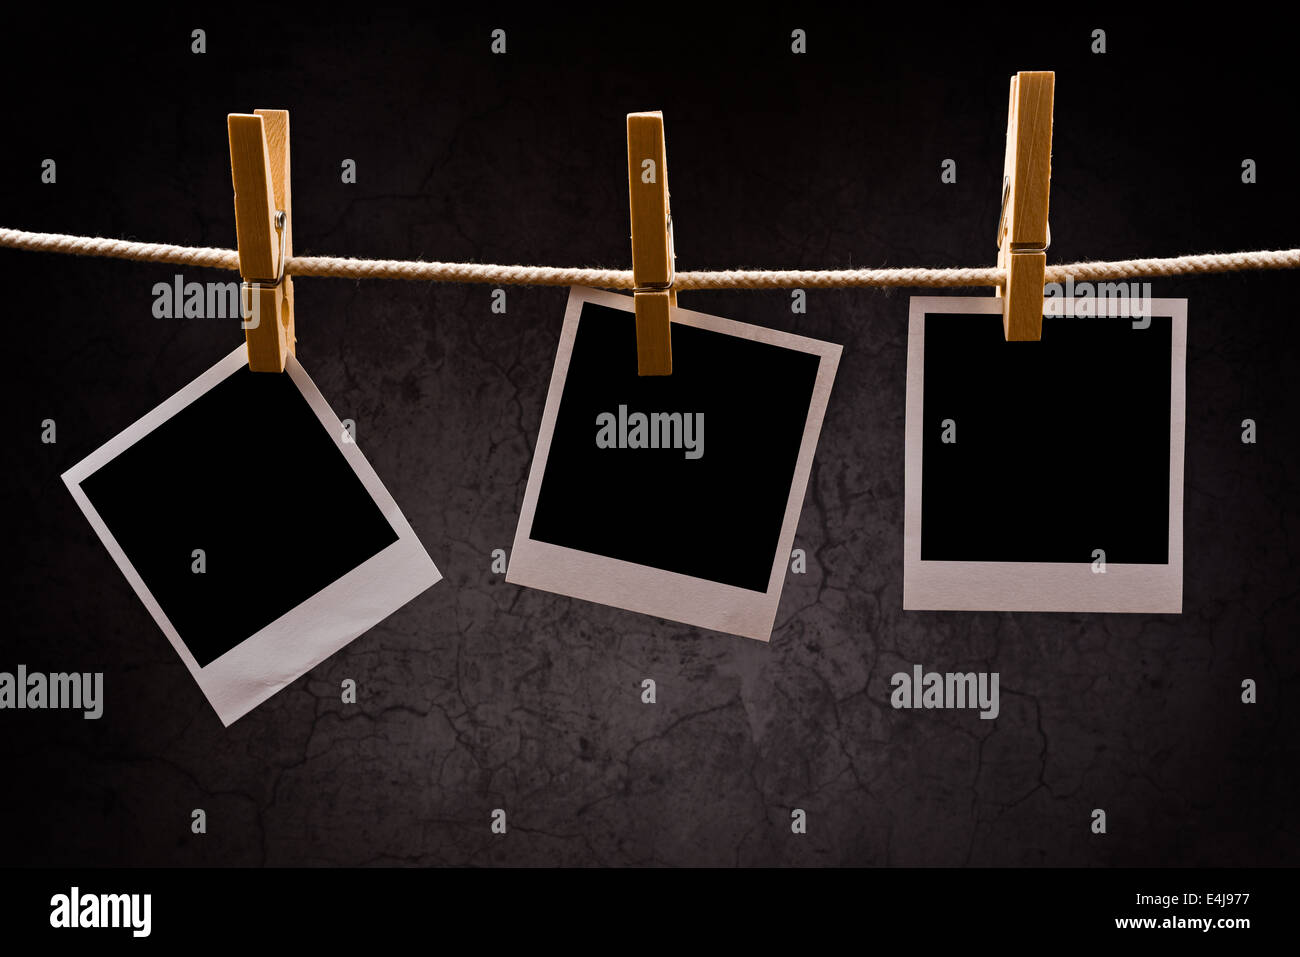 Photography paper with instant photo frames attached to rope with clothes pins. Copy space for your image. - Stock Image